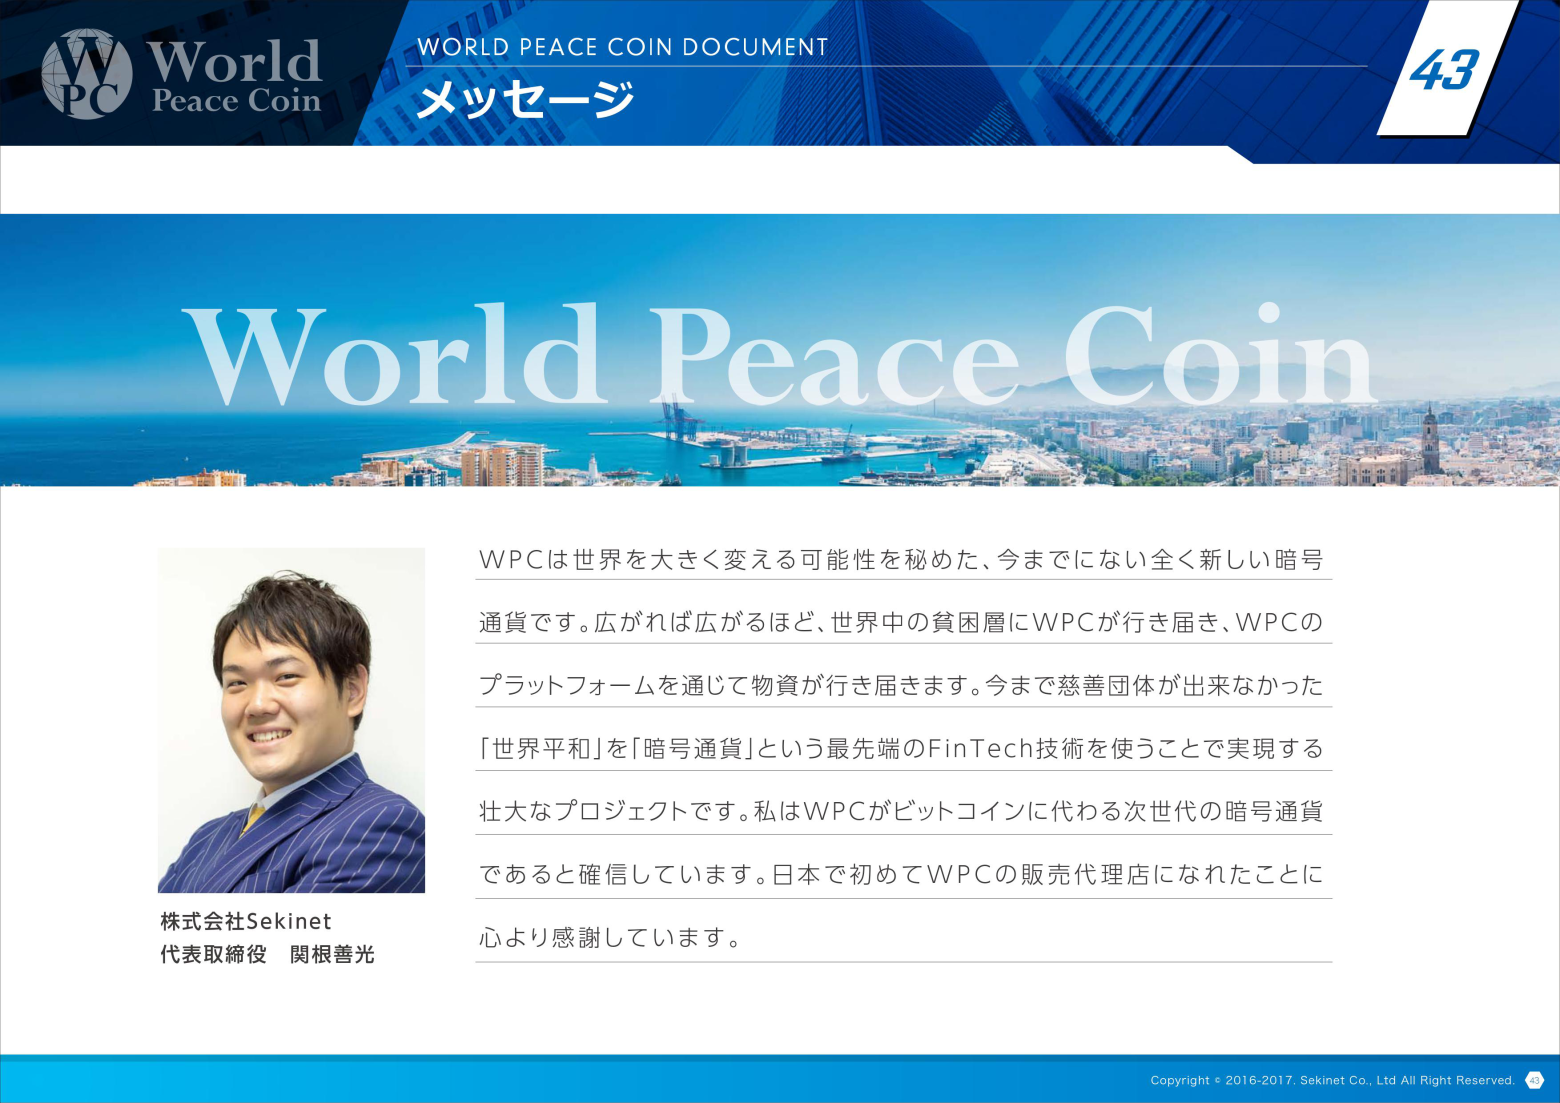 World Peace Coin